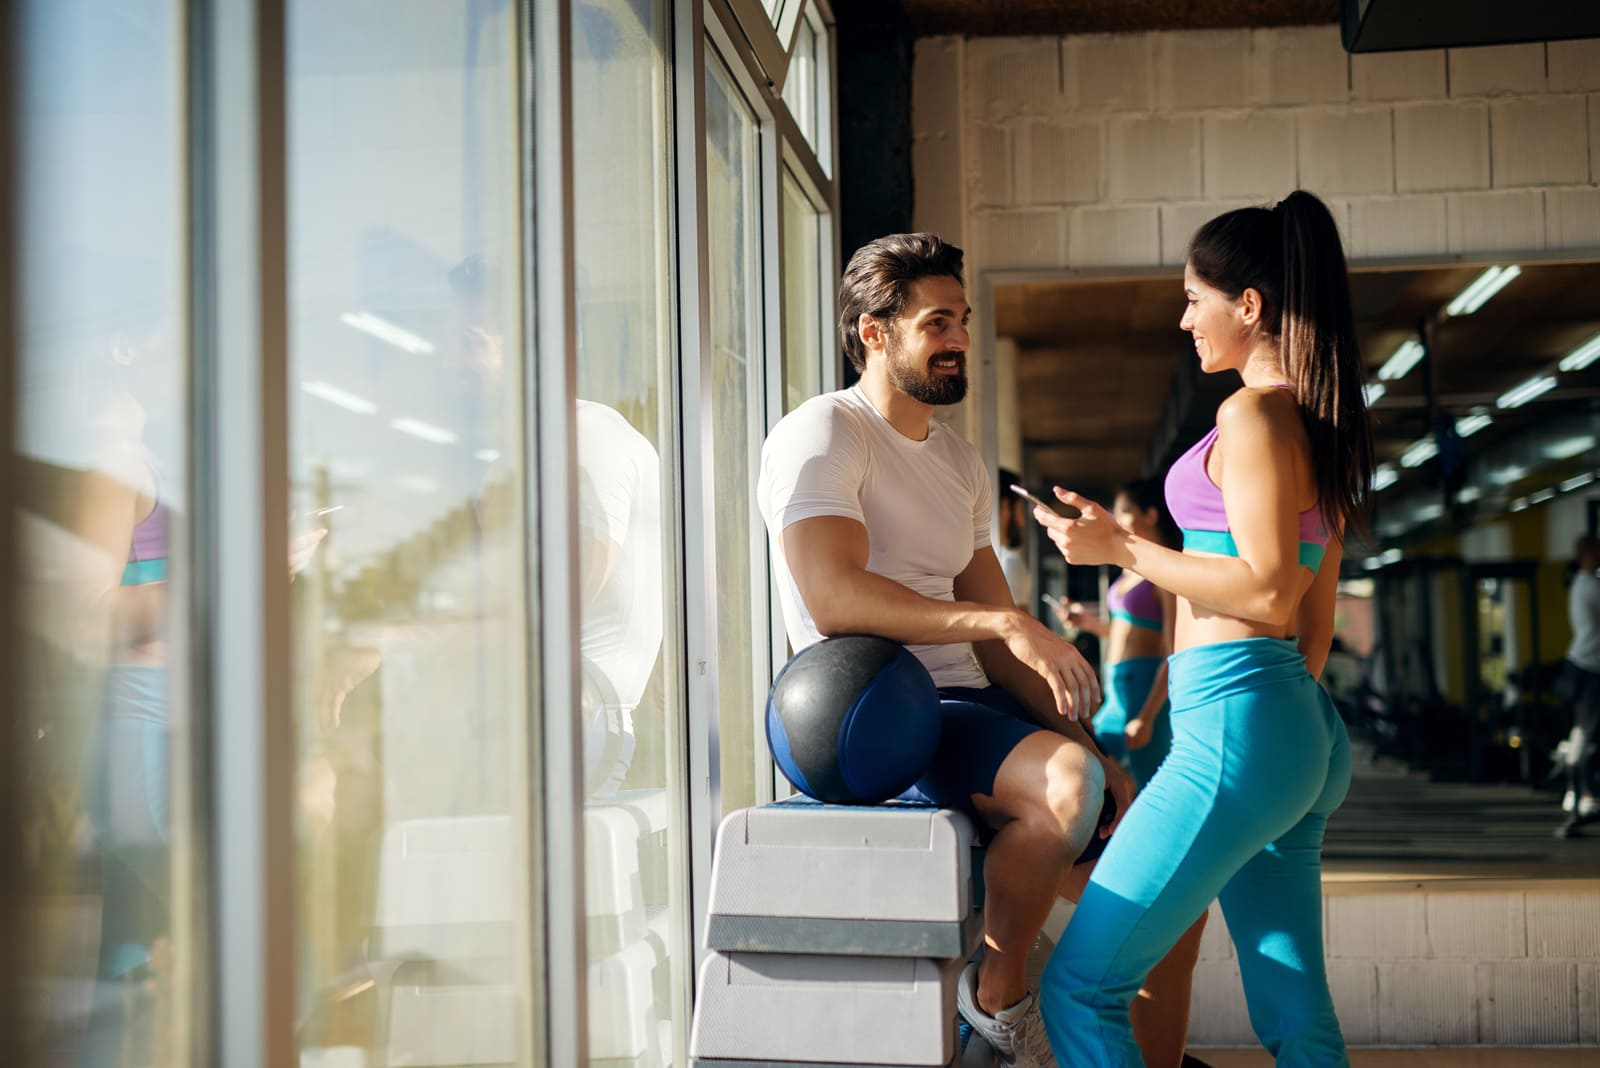 in the gym, a beautiful woman and a handsome young man are flirting